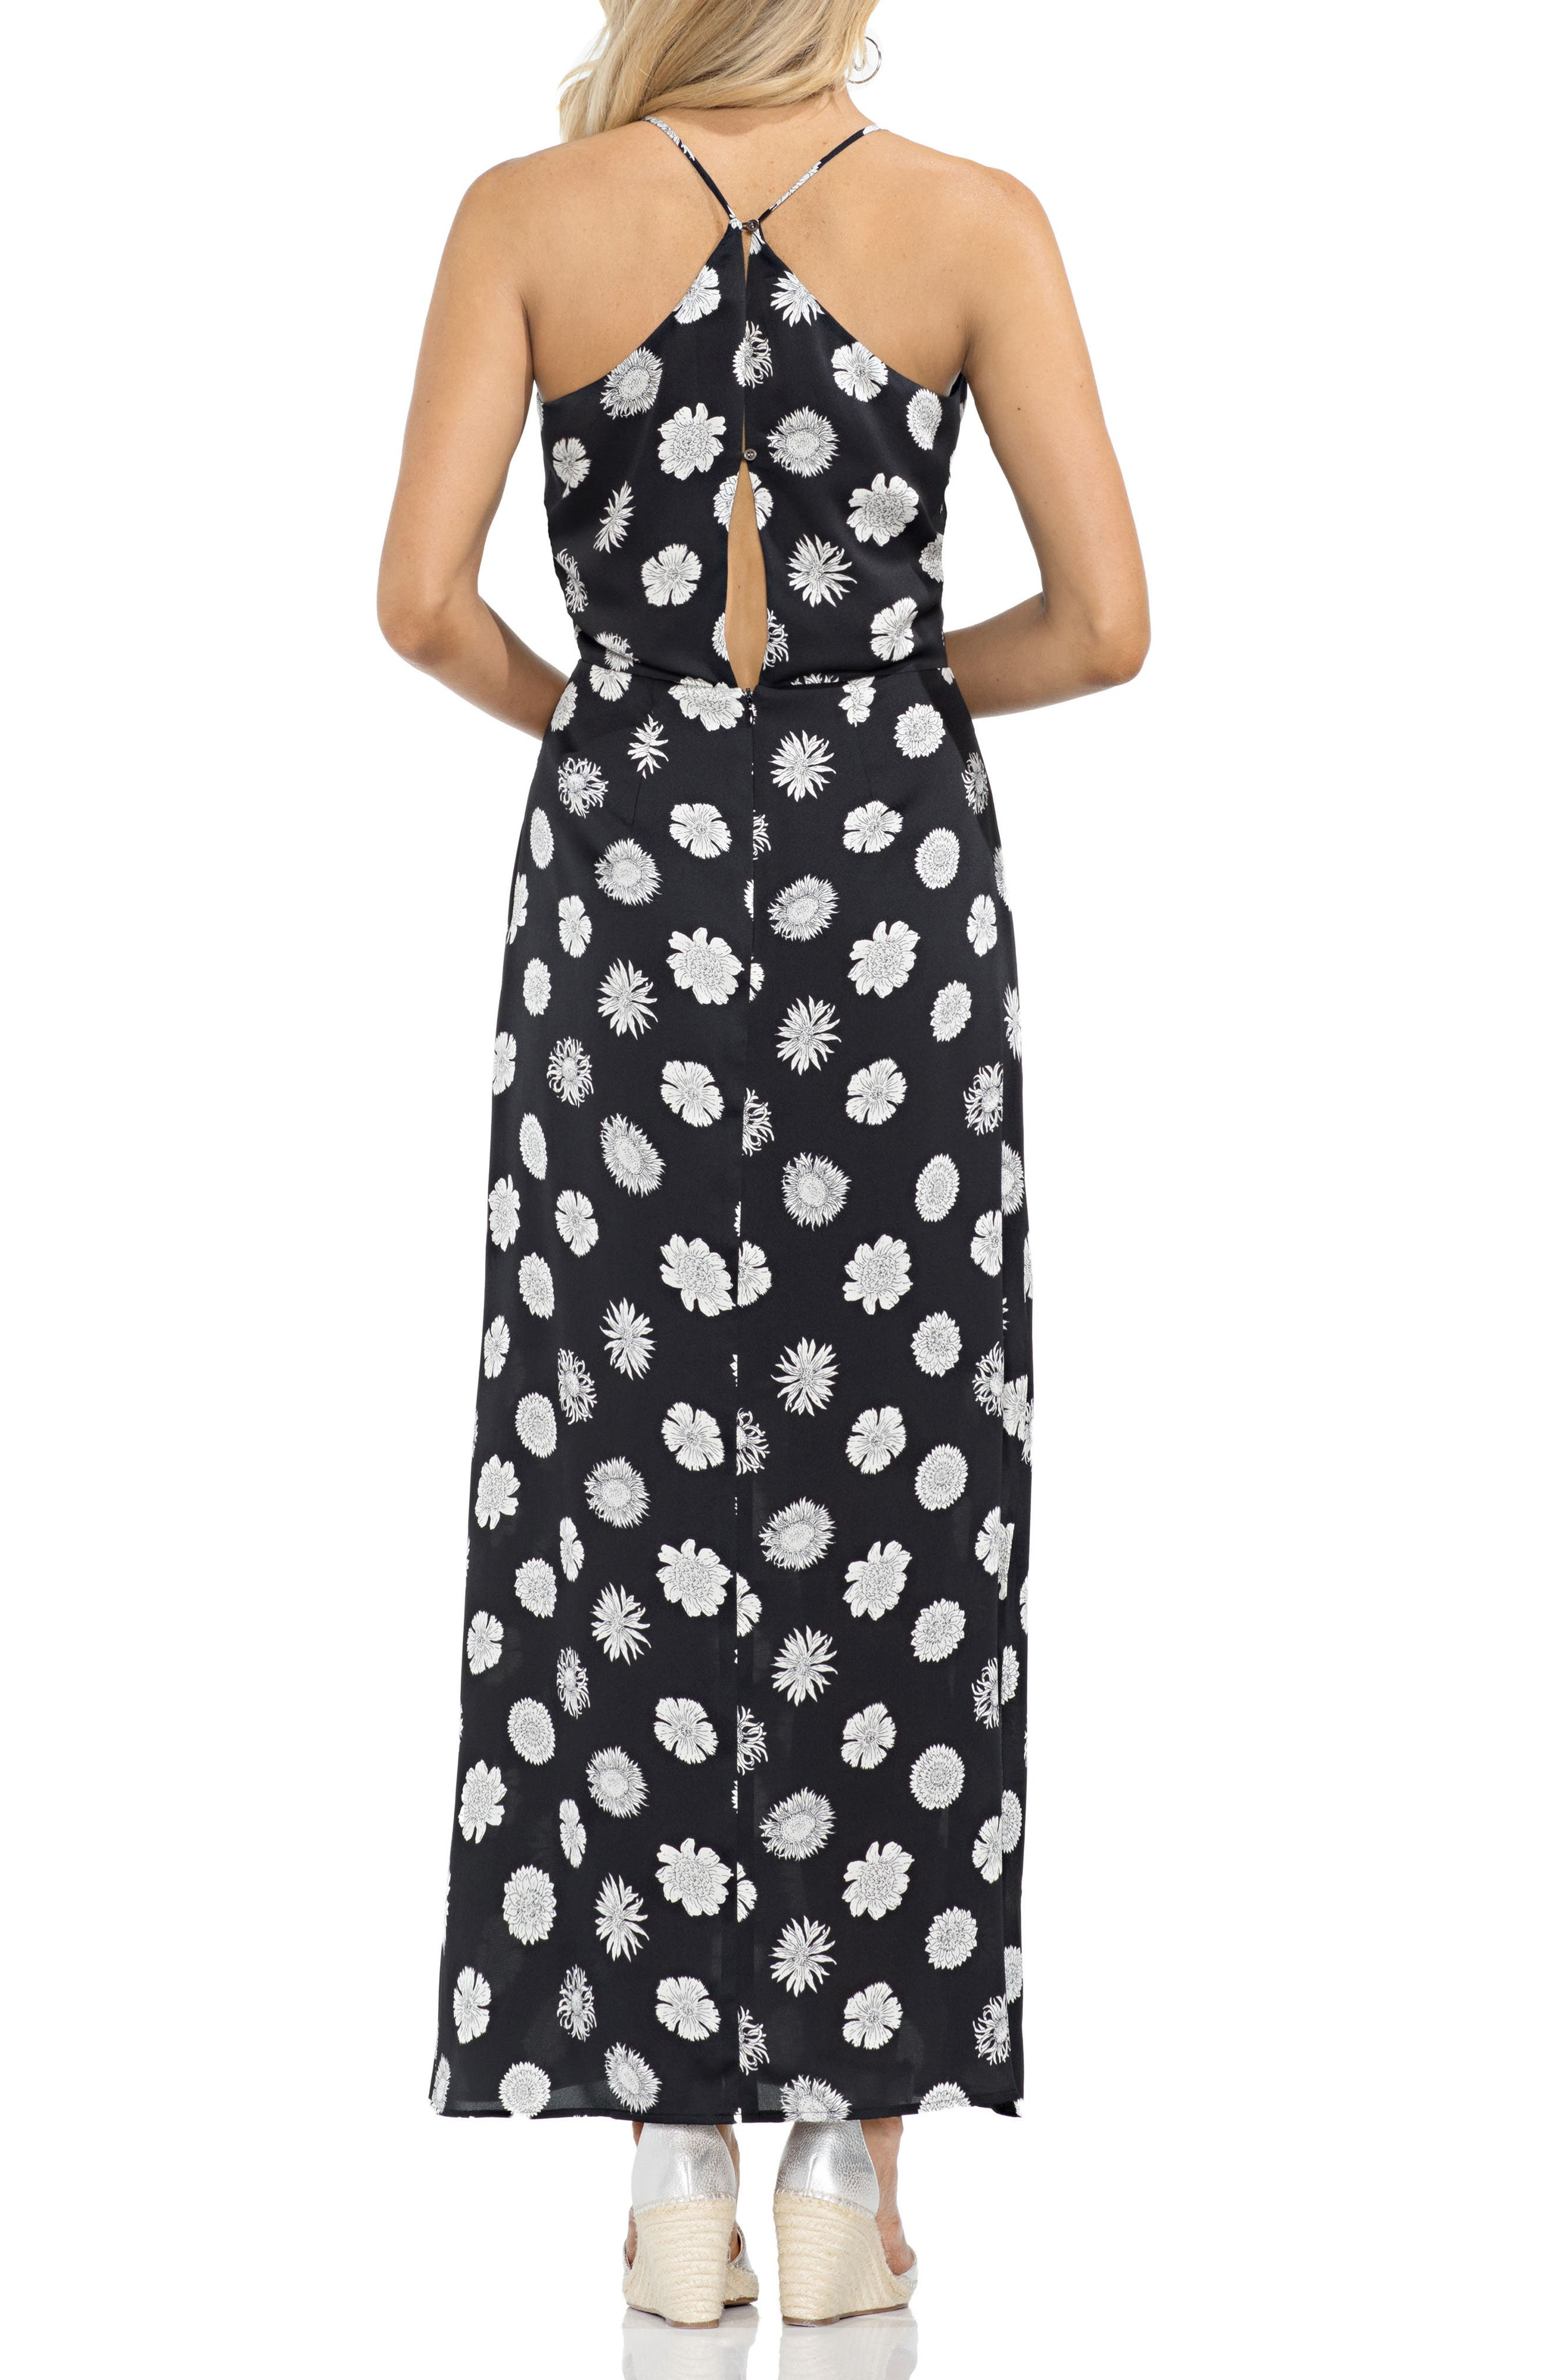 VINCE CAMUTO,                             Botanical Tropic A-Line Maxi Dress,                             Alternate thumbnail 2, color,                             001